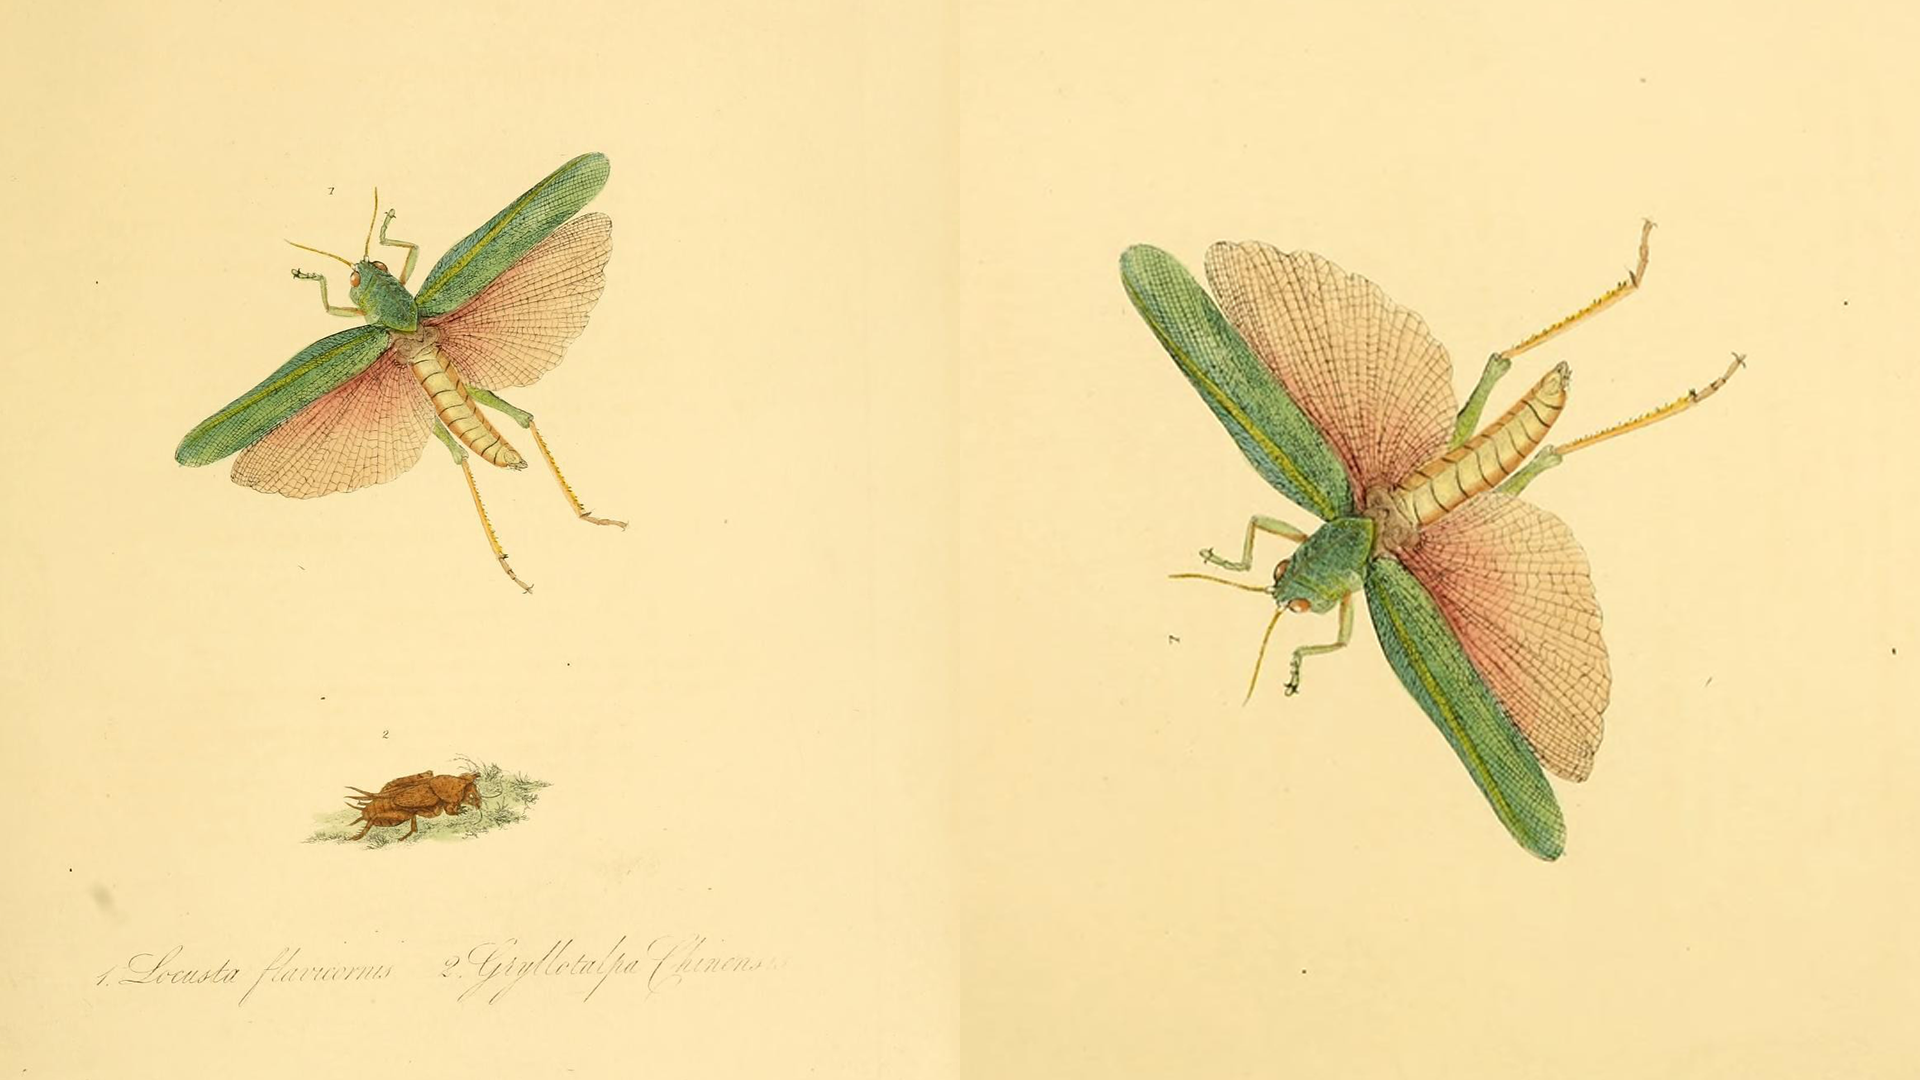 Natural history of the insects of China (Pl. 12)